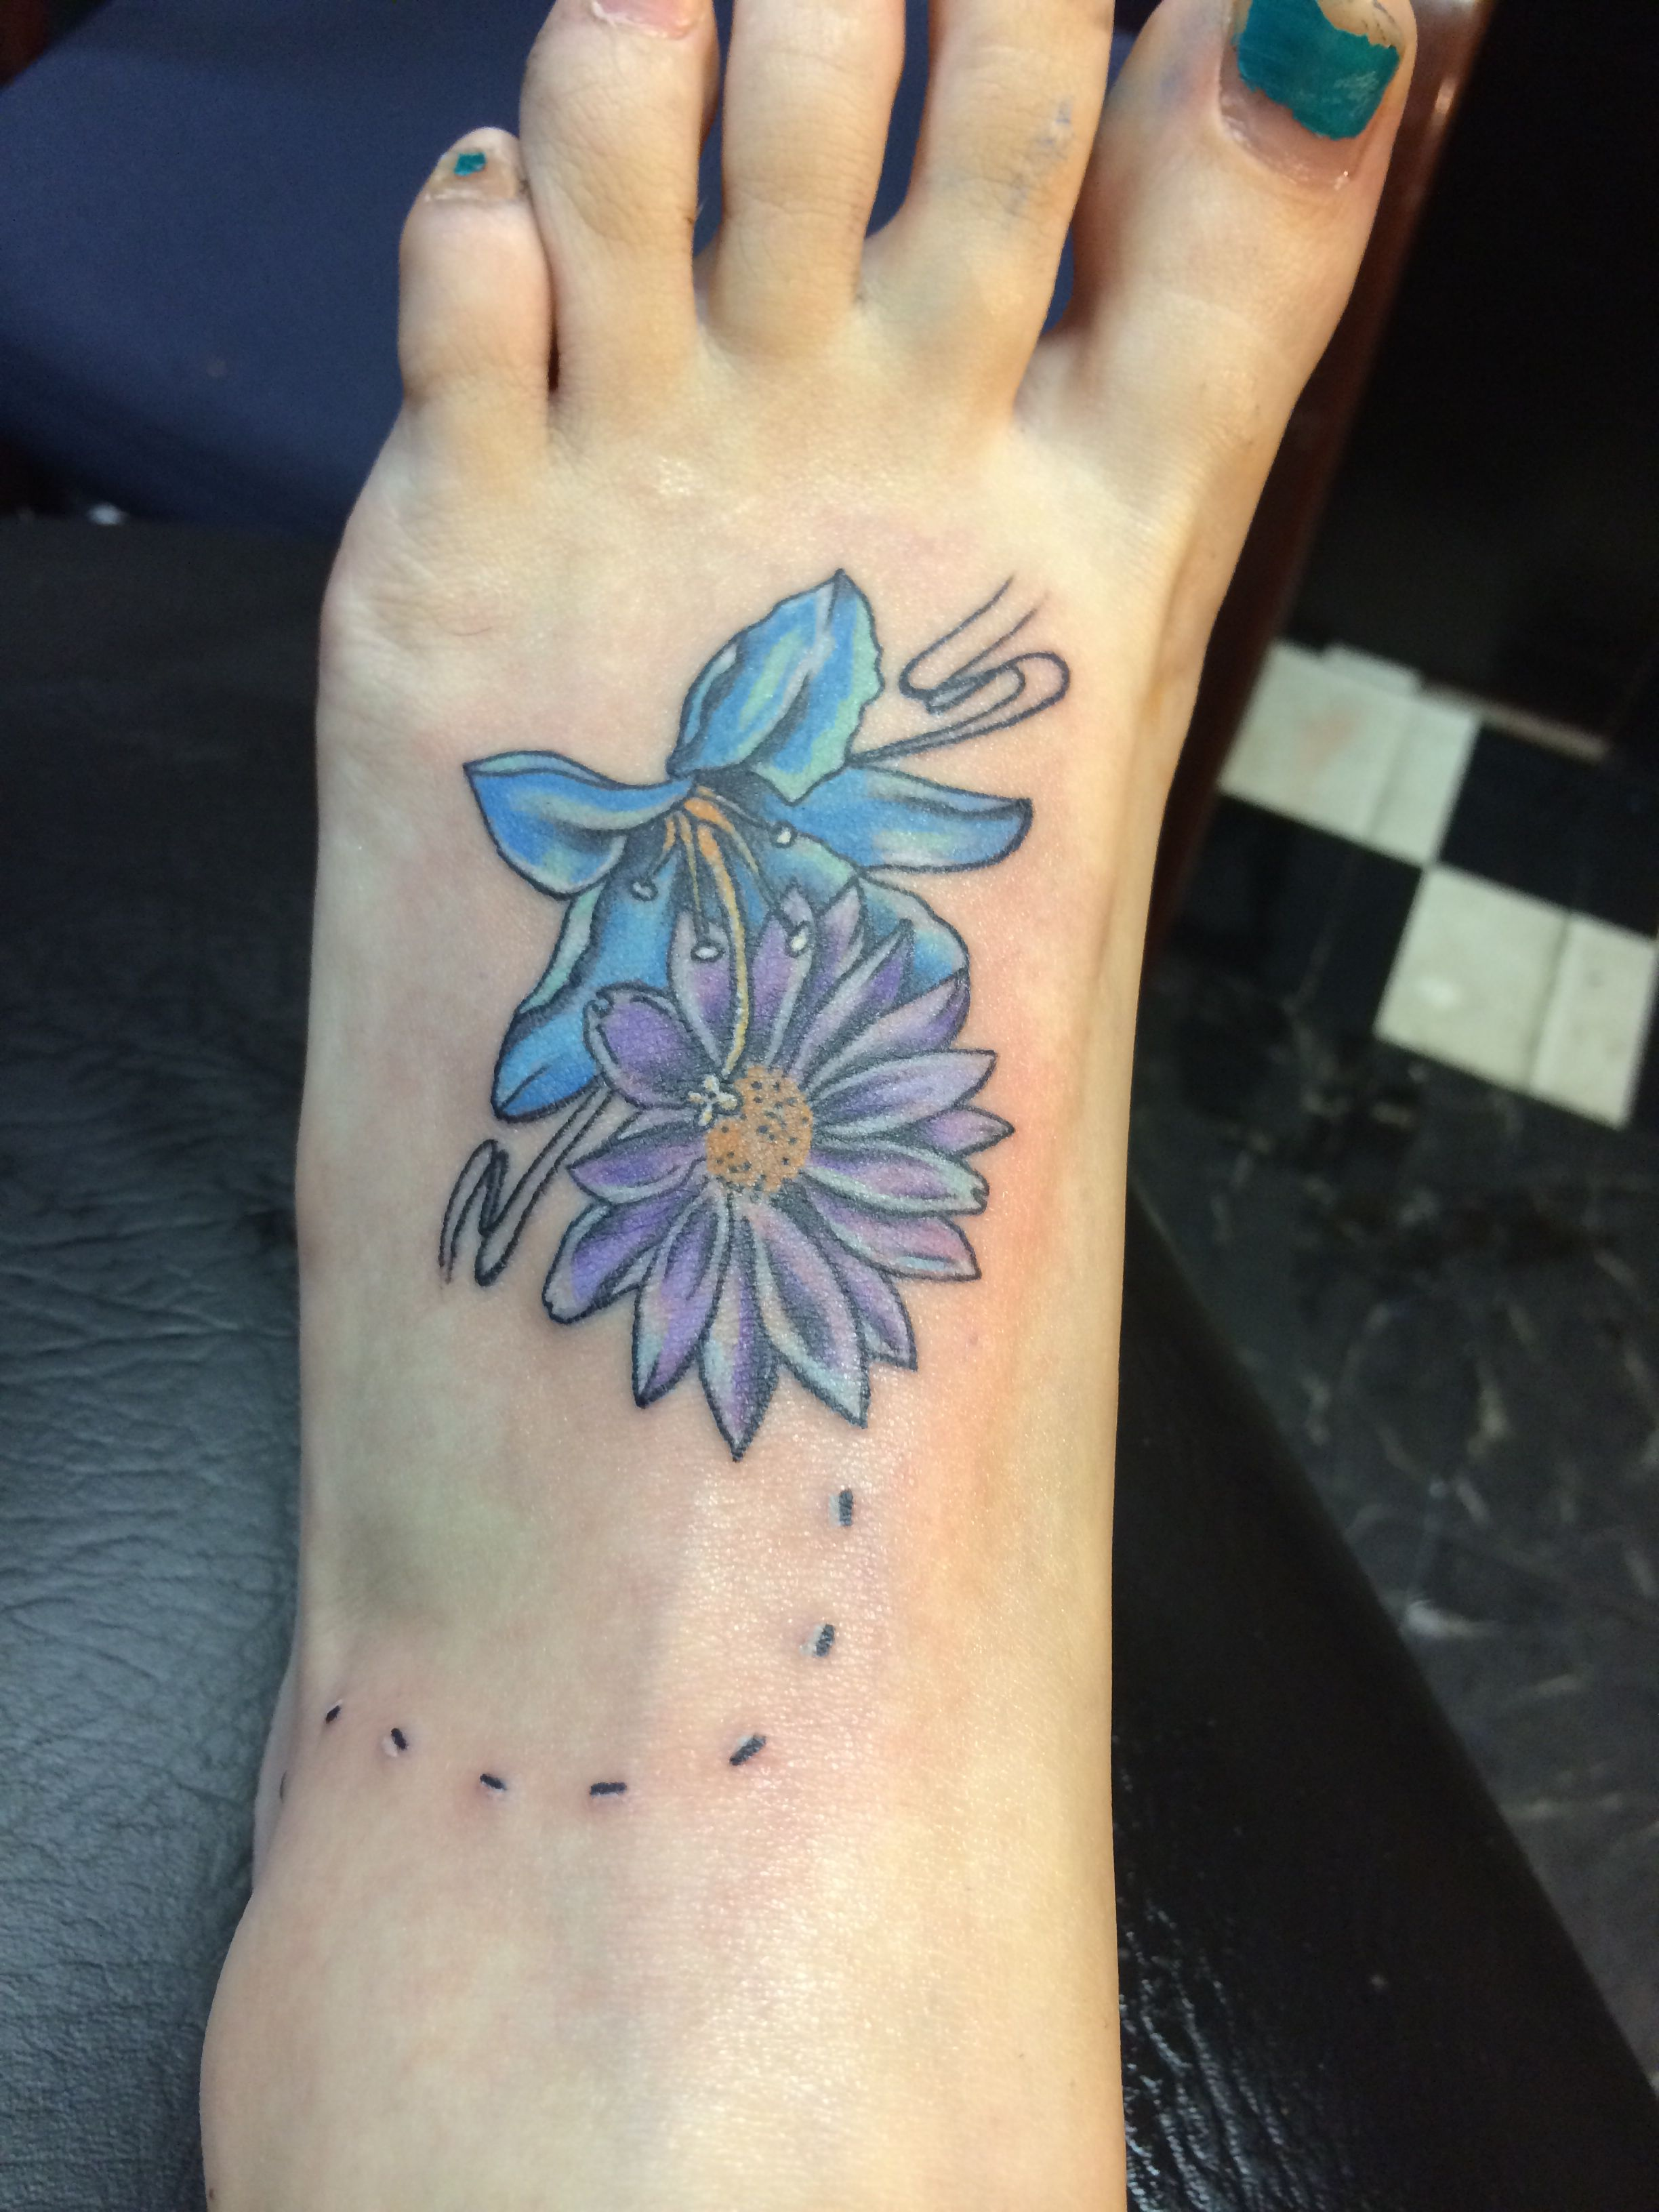 Flower Tattoo On Foot Lily And Daisy Done By Geo At Passionfish In